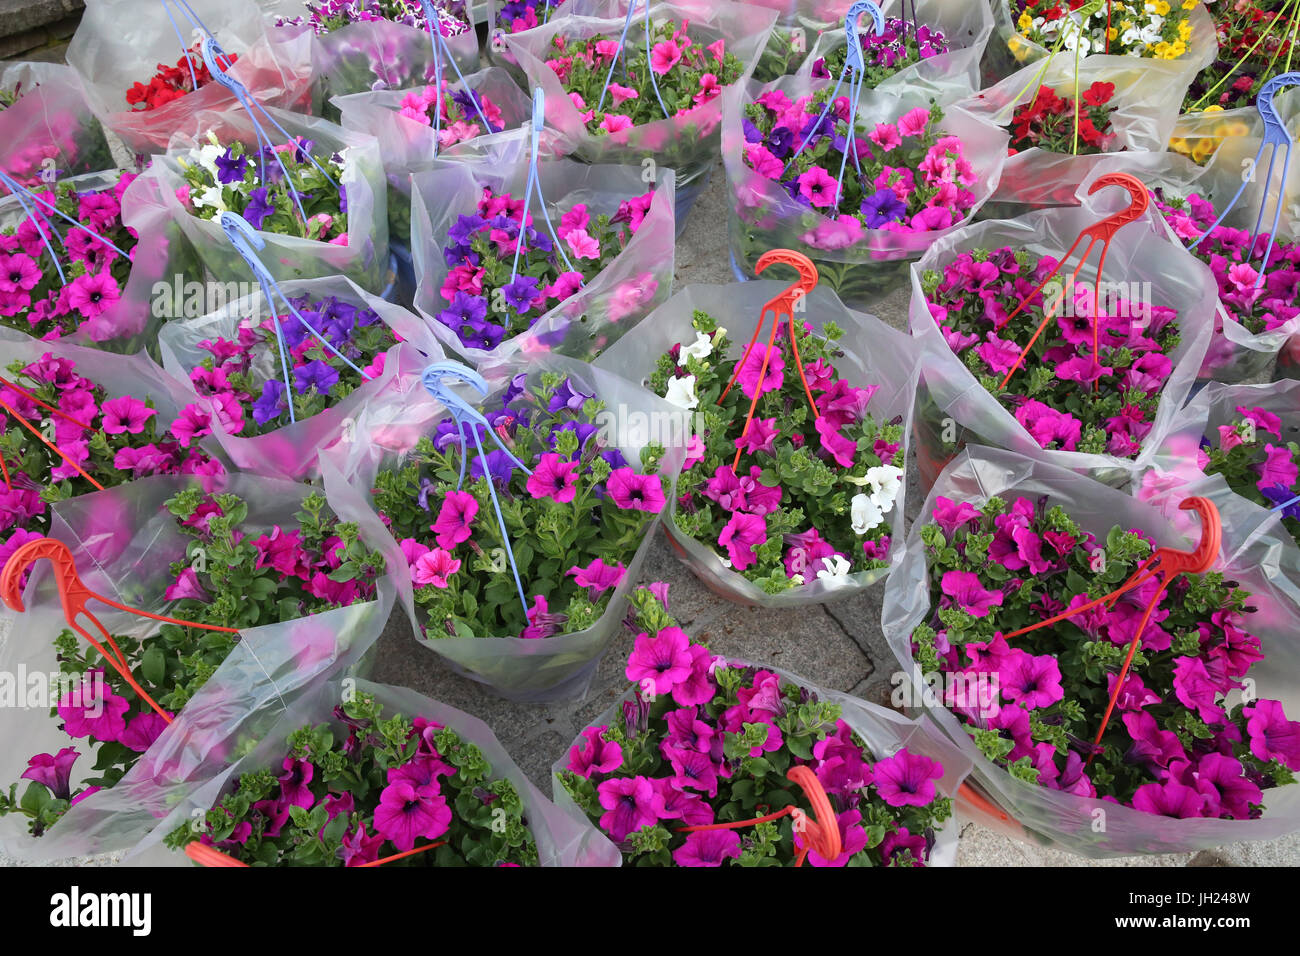 Spring Flowers For Sale At The Sunday Morning Market France Stock